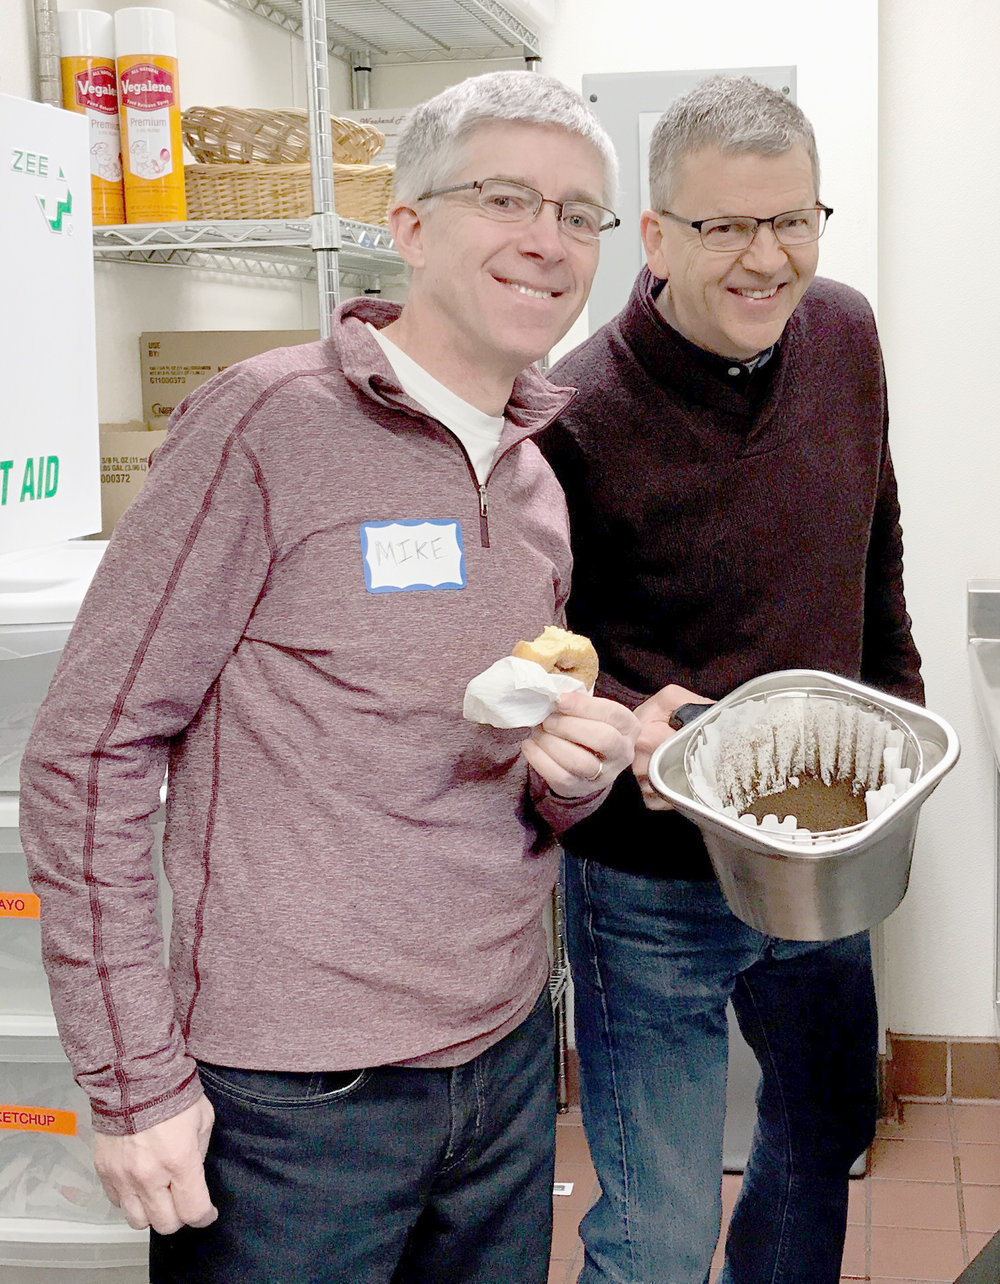 Weekend Fellowship - Mike Mikulski and Jeff Opheim - cropped.jpg